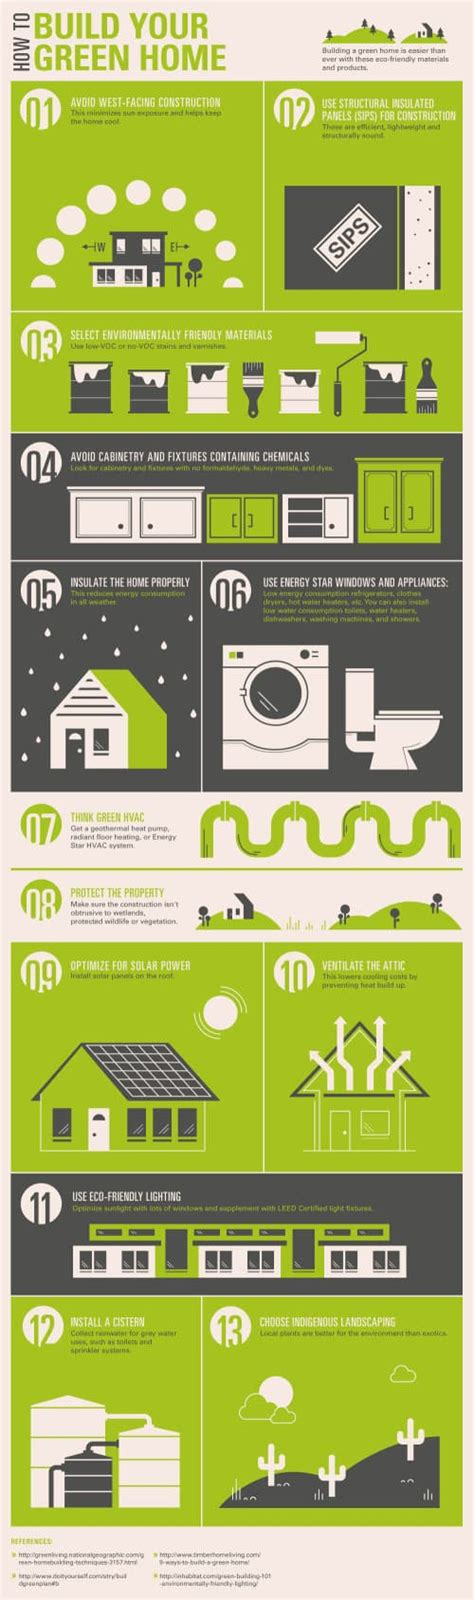 13 tips for building a green home infographic green